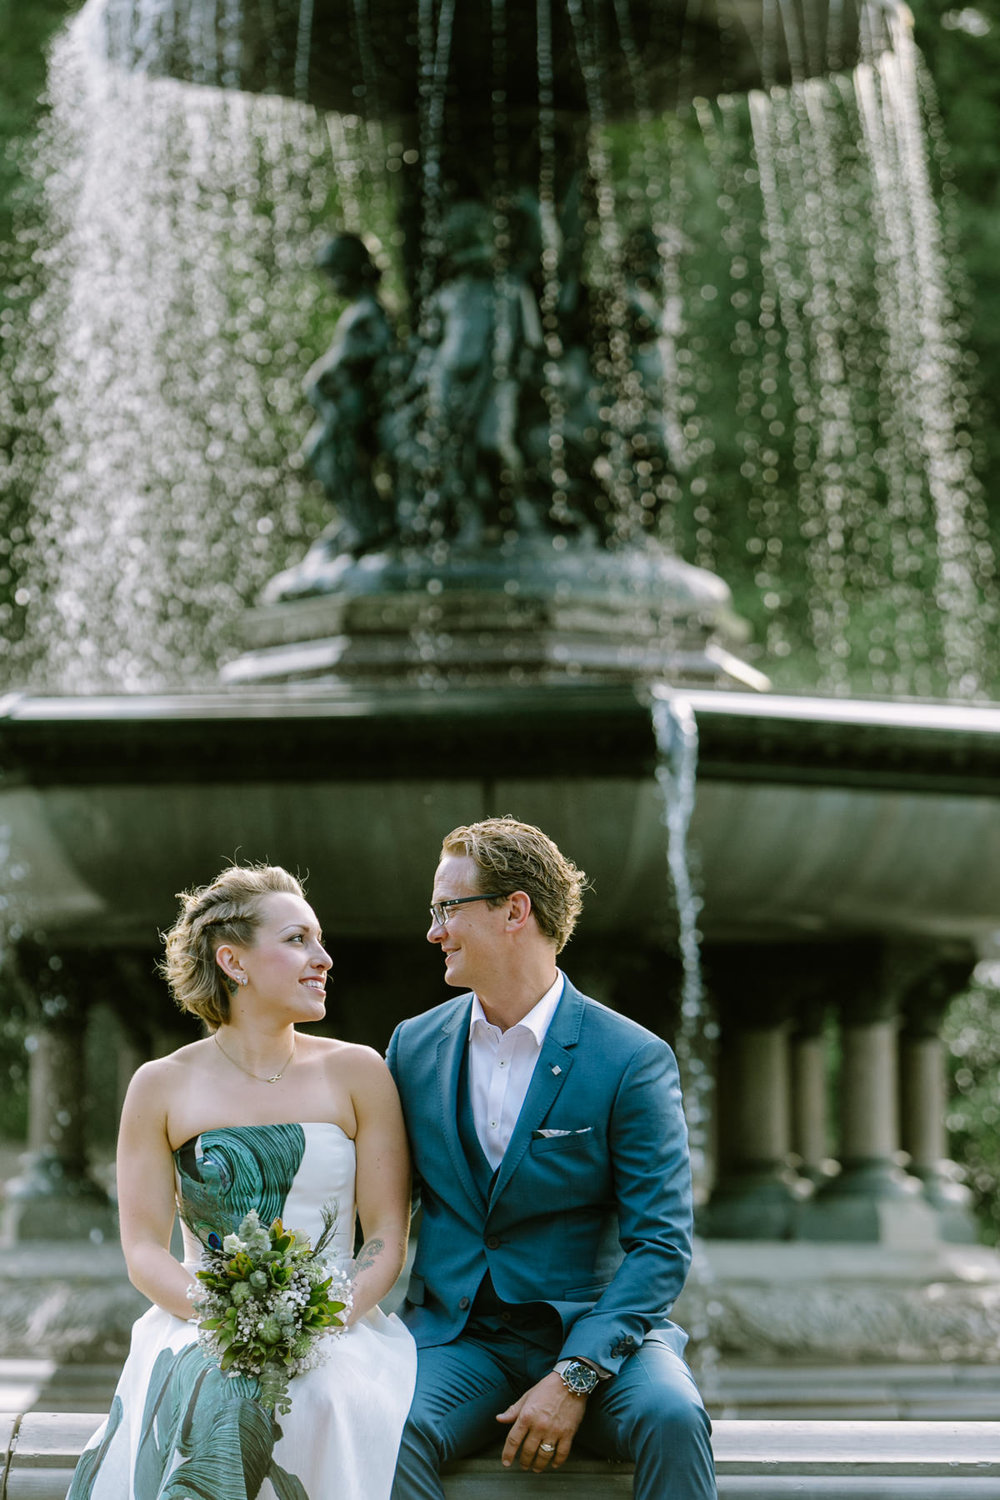 NYC-engagement-photography-by-Tanya-Isaeva-82.jpg